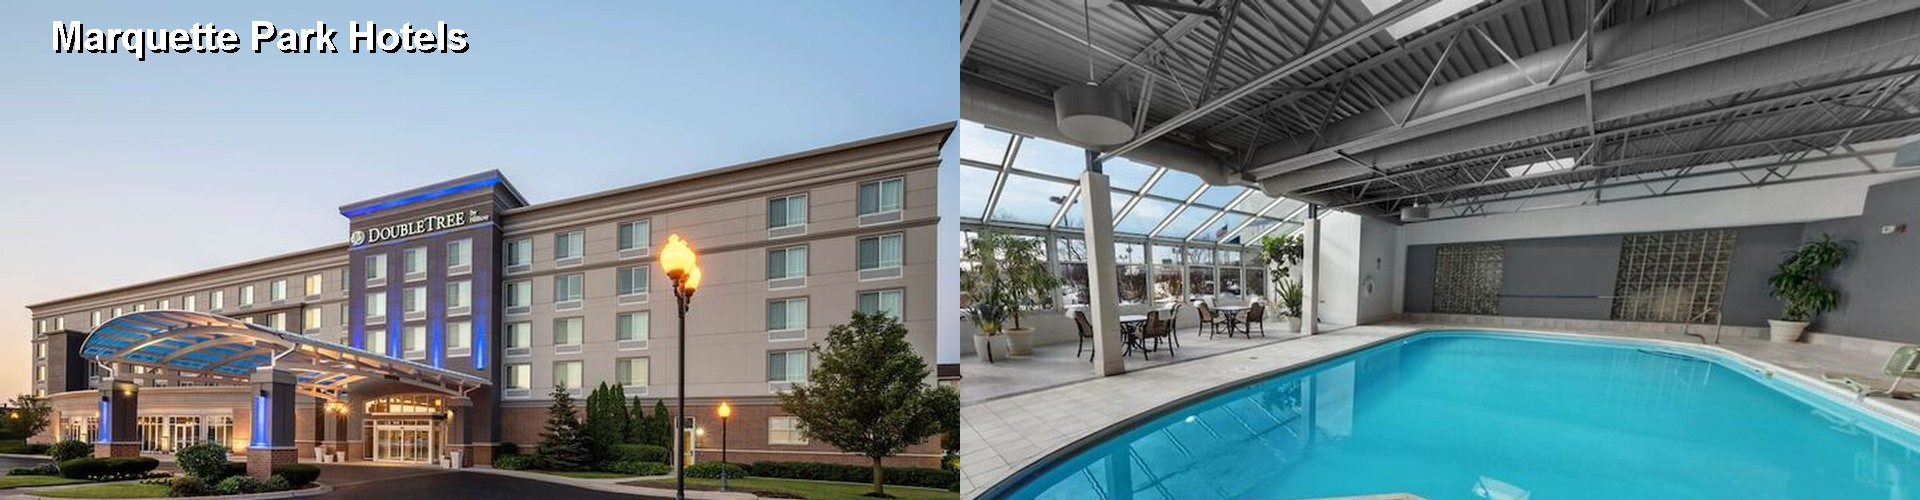 5 Best Hotels near Marquette Park